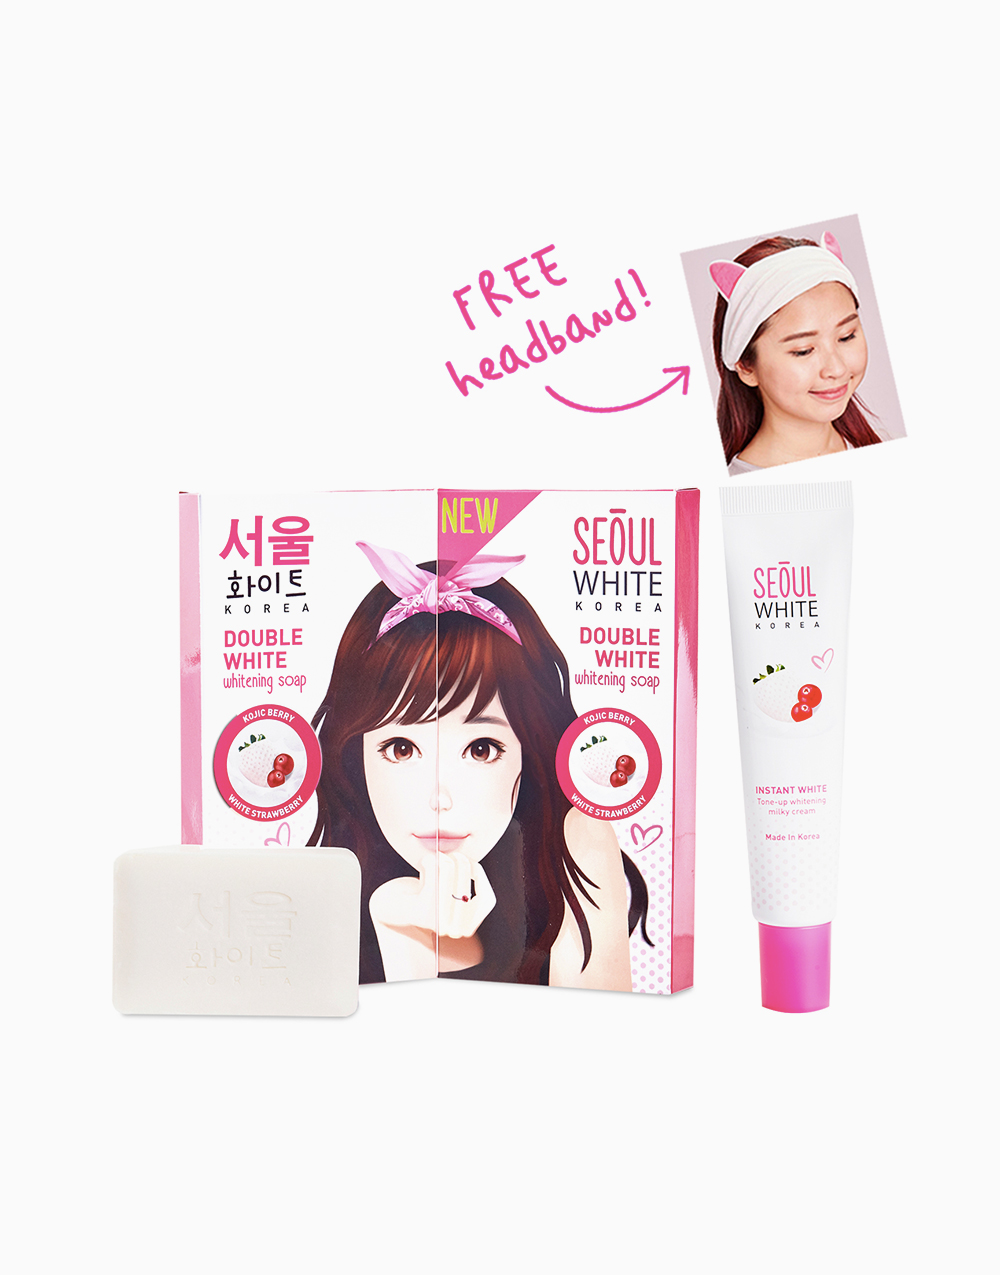 Online Exclusive: 2 Triple Pack Whitening Soap and Tone-up Whitening Cream FREE Hairband by Seoul White Korea